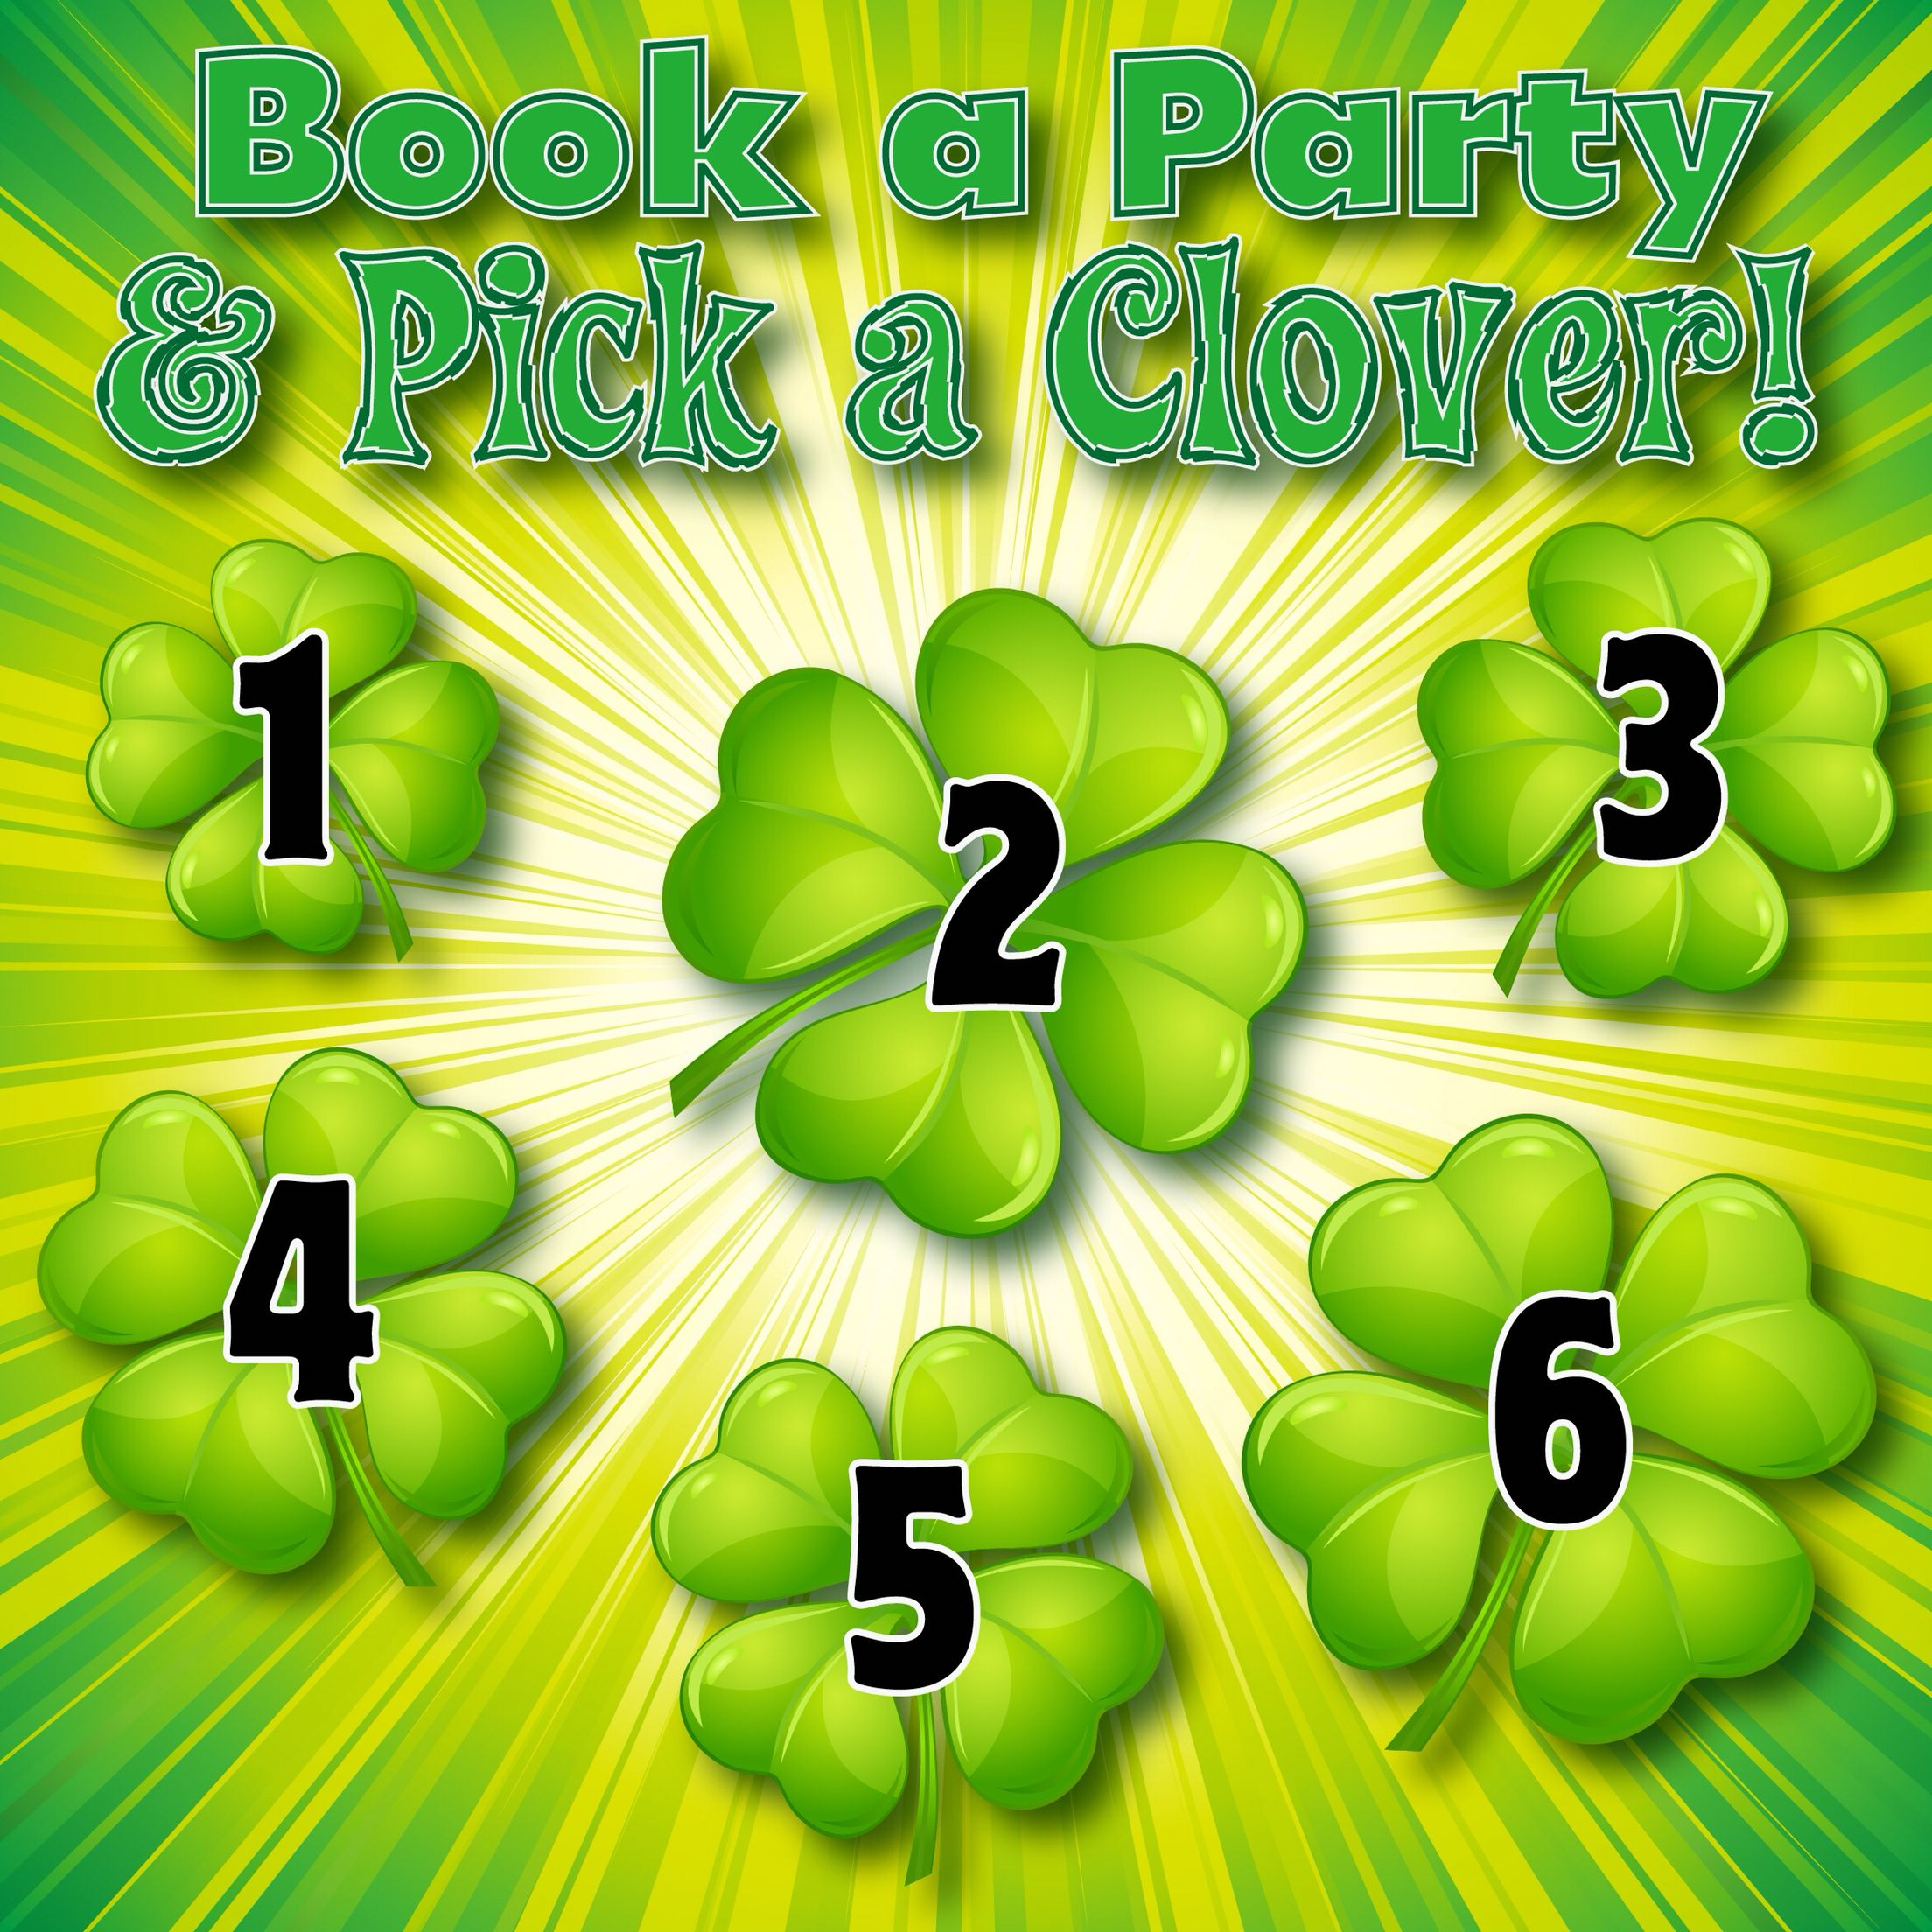 Message me to book a Facebook party, pick a clover number